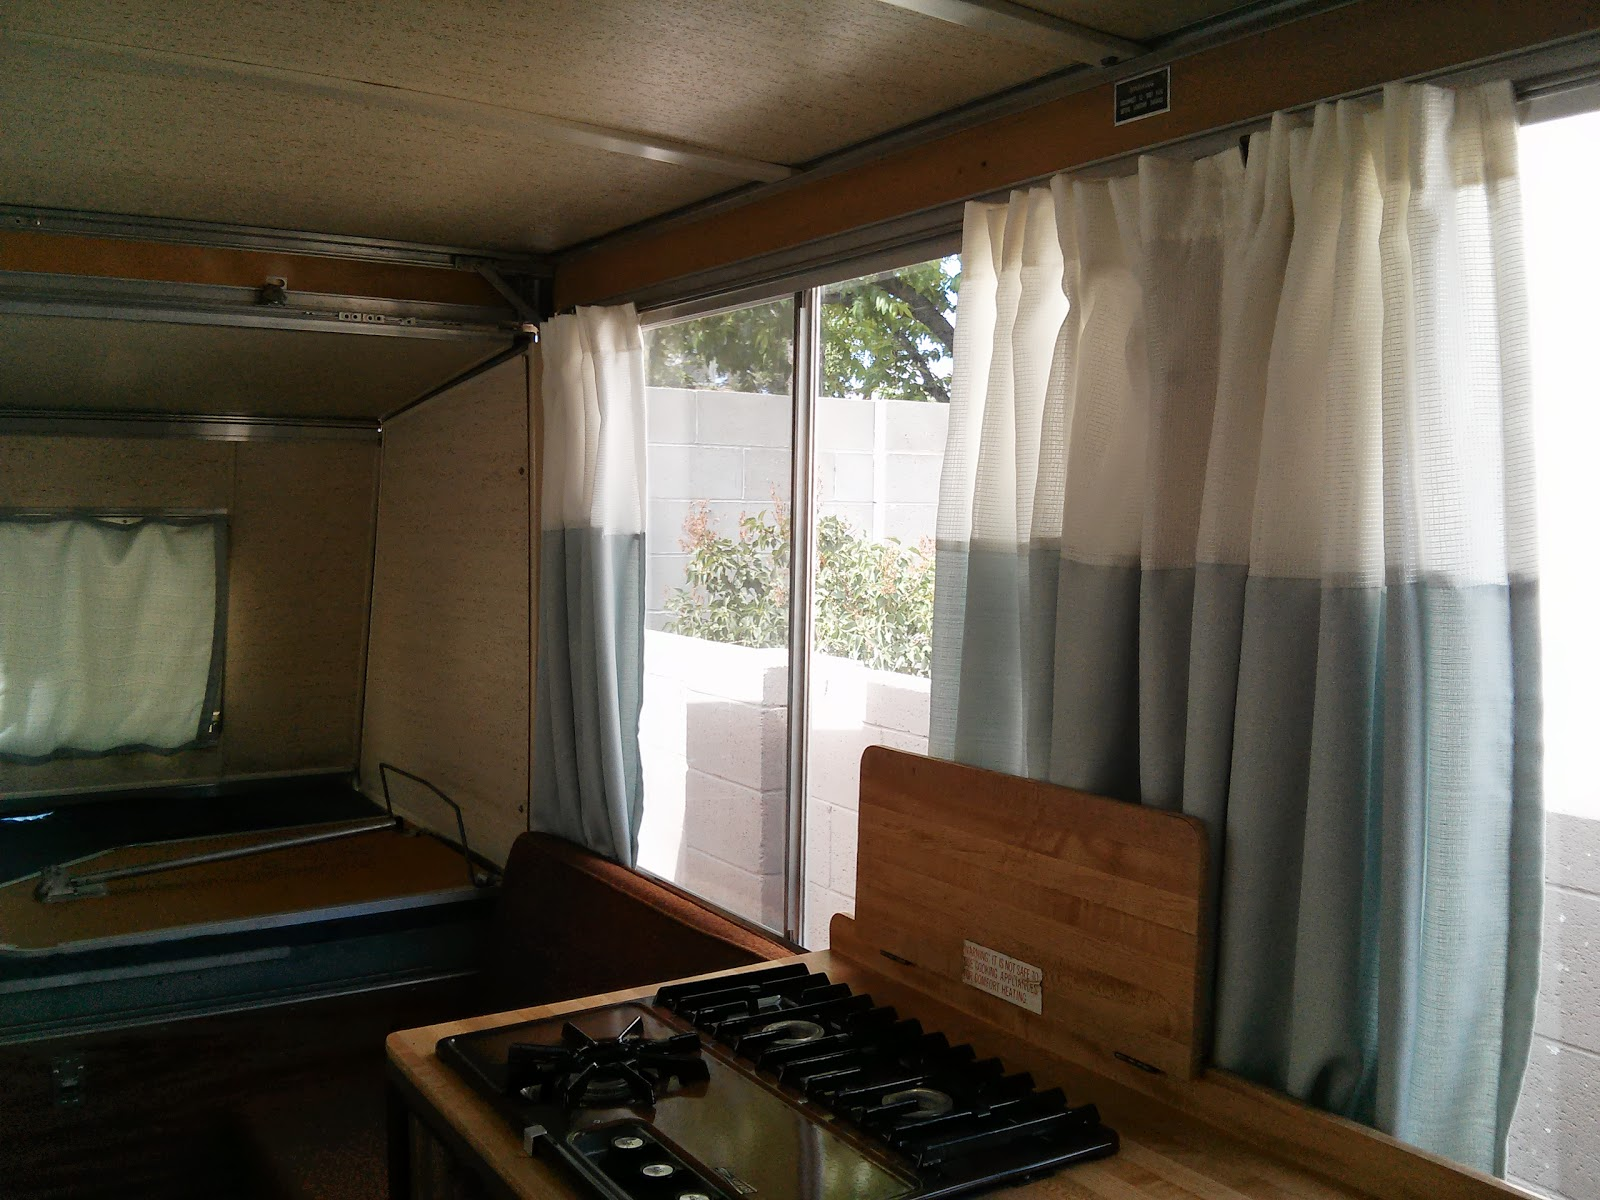 Apache camper interior with new white and blue curtains